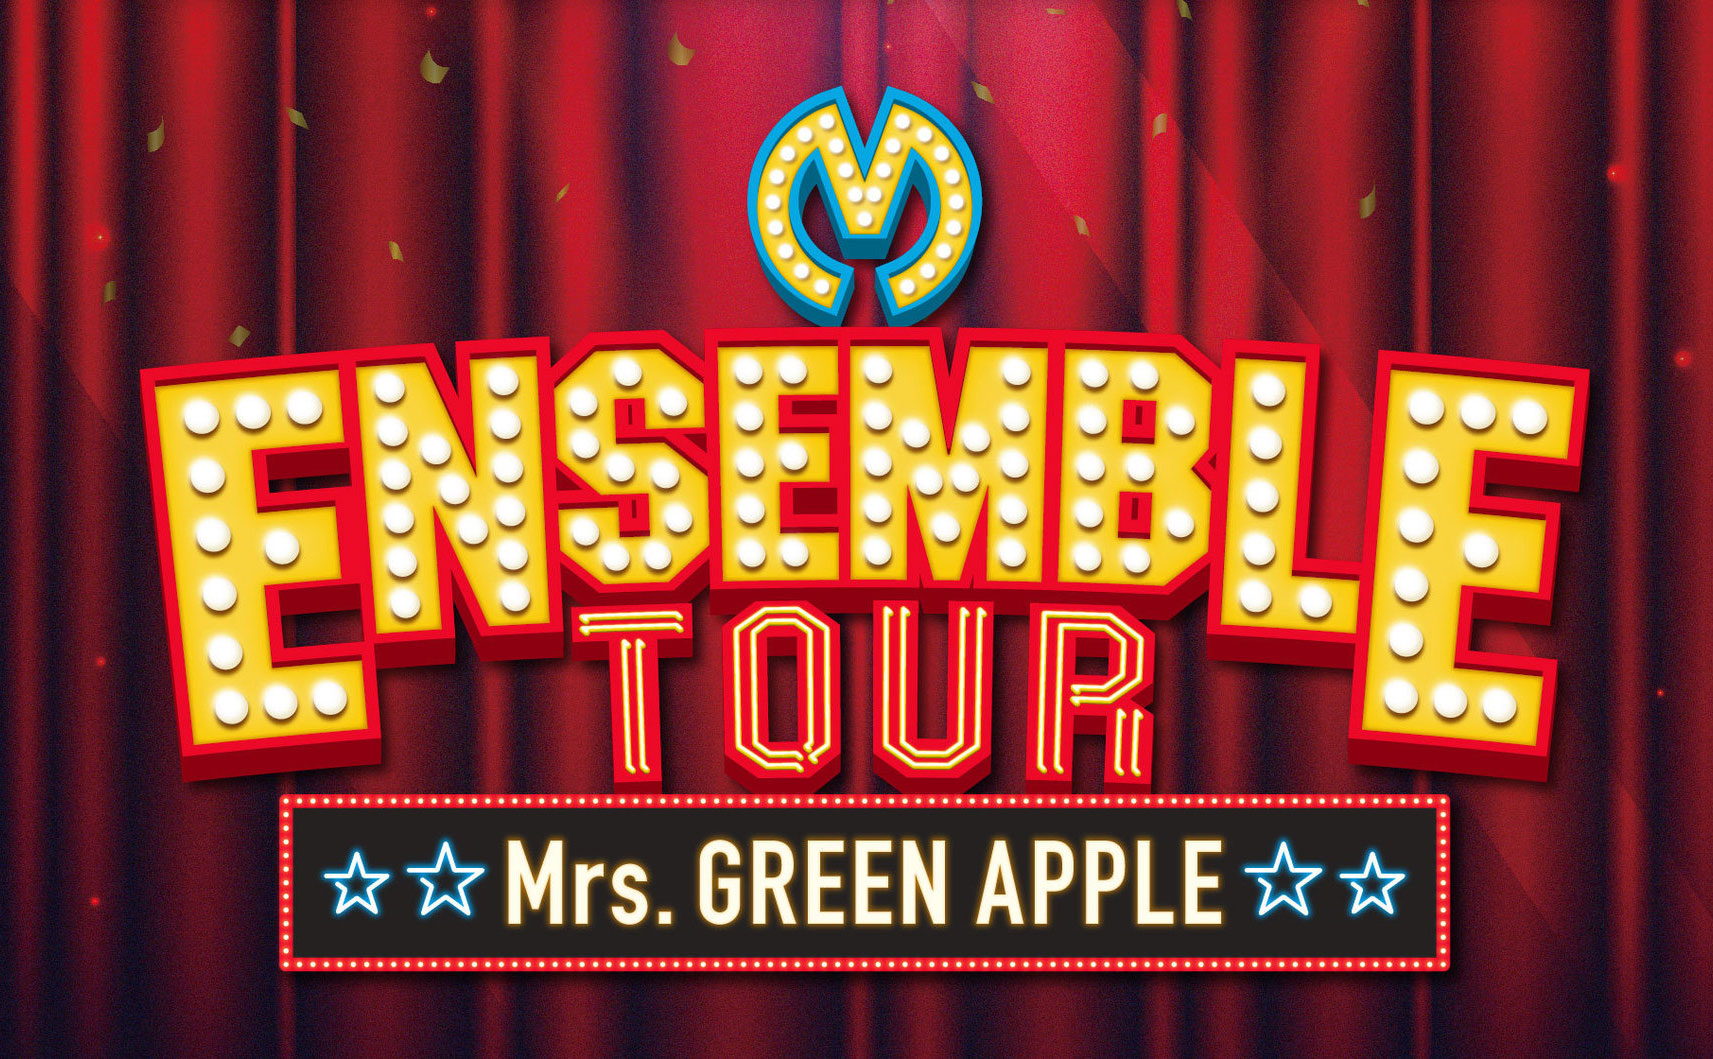 ENSEMBLE TOUR / Mrs.GREEN APPLE